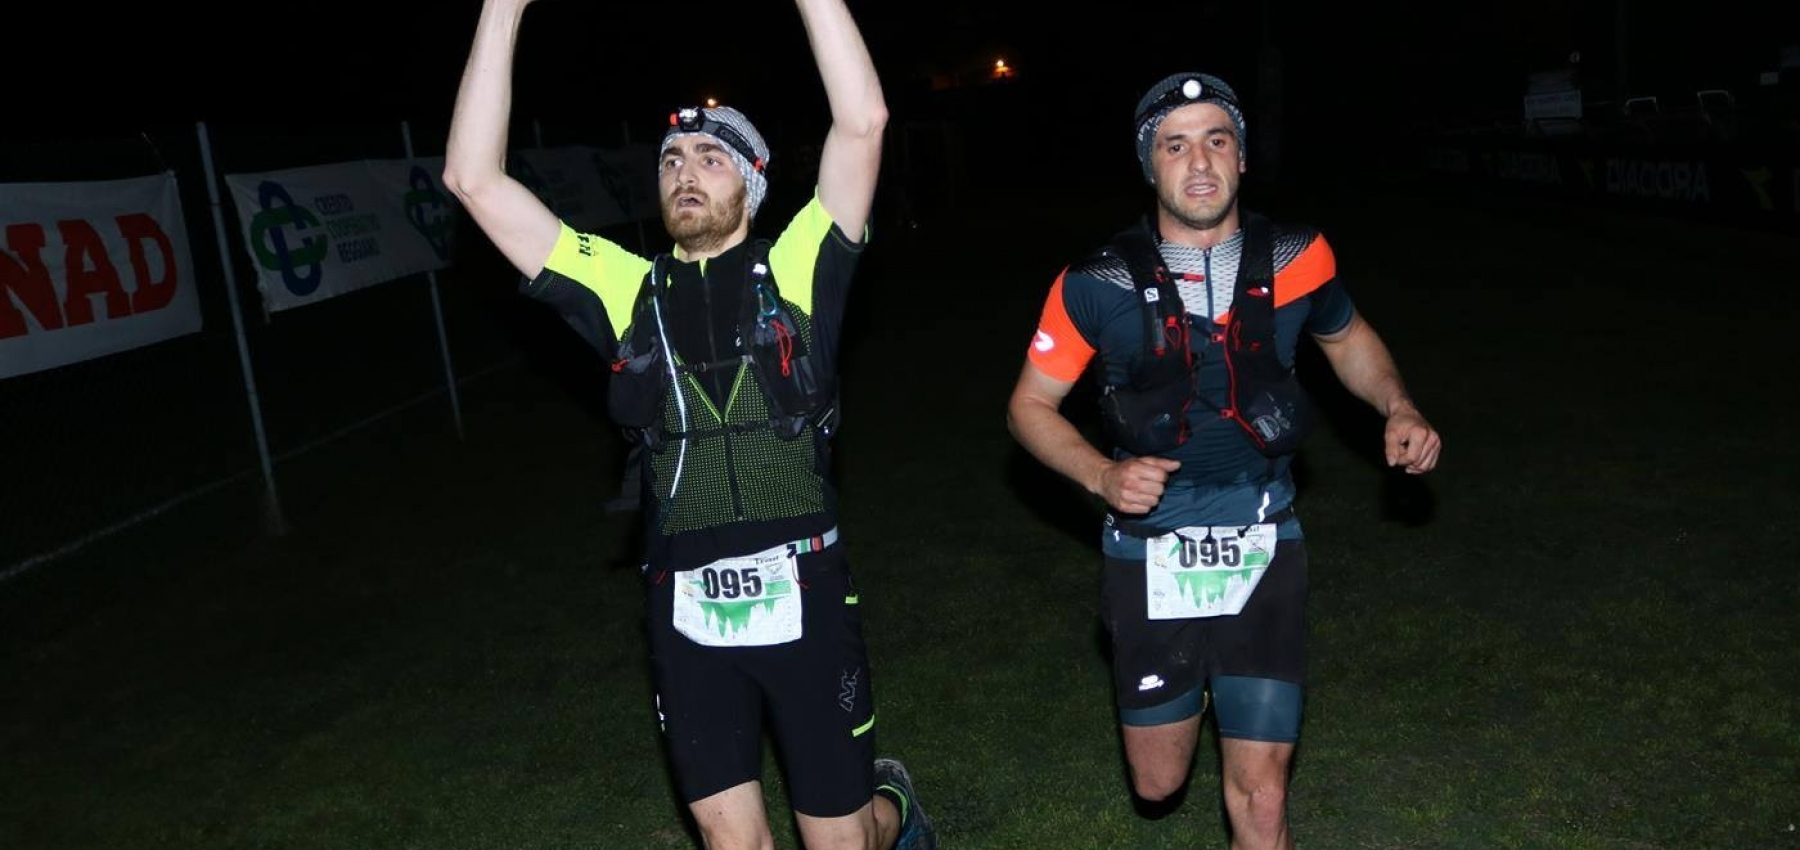 Fornacione Trail Night Scandiano